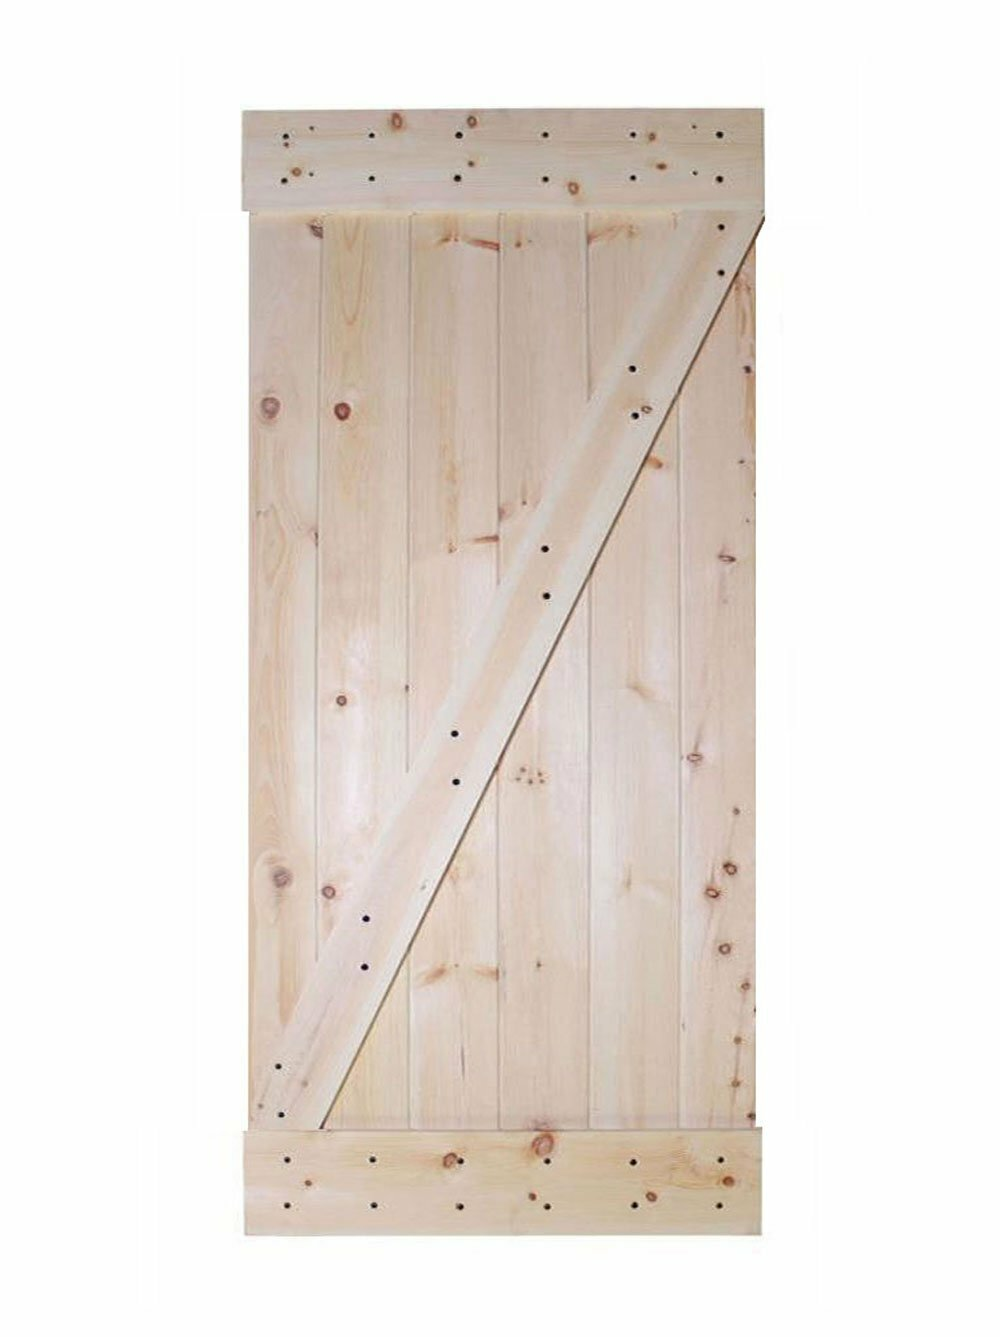 Incroyable Calhome Wood 1 Panel Unfinished Interior Barn Door | Wayfair